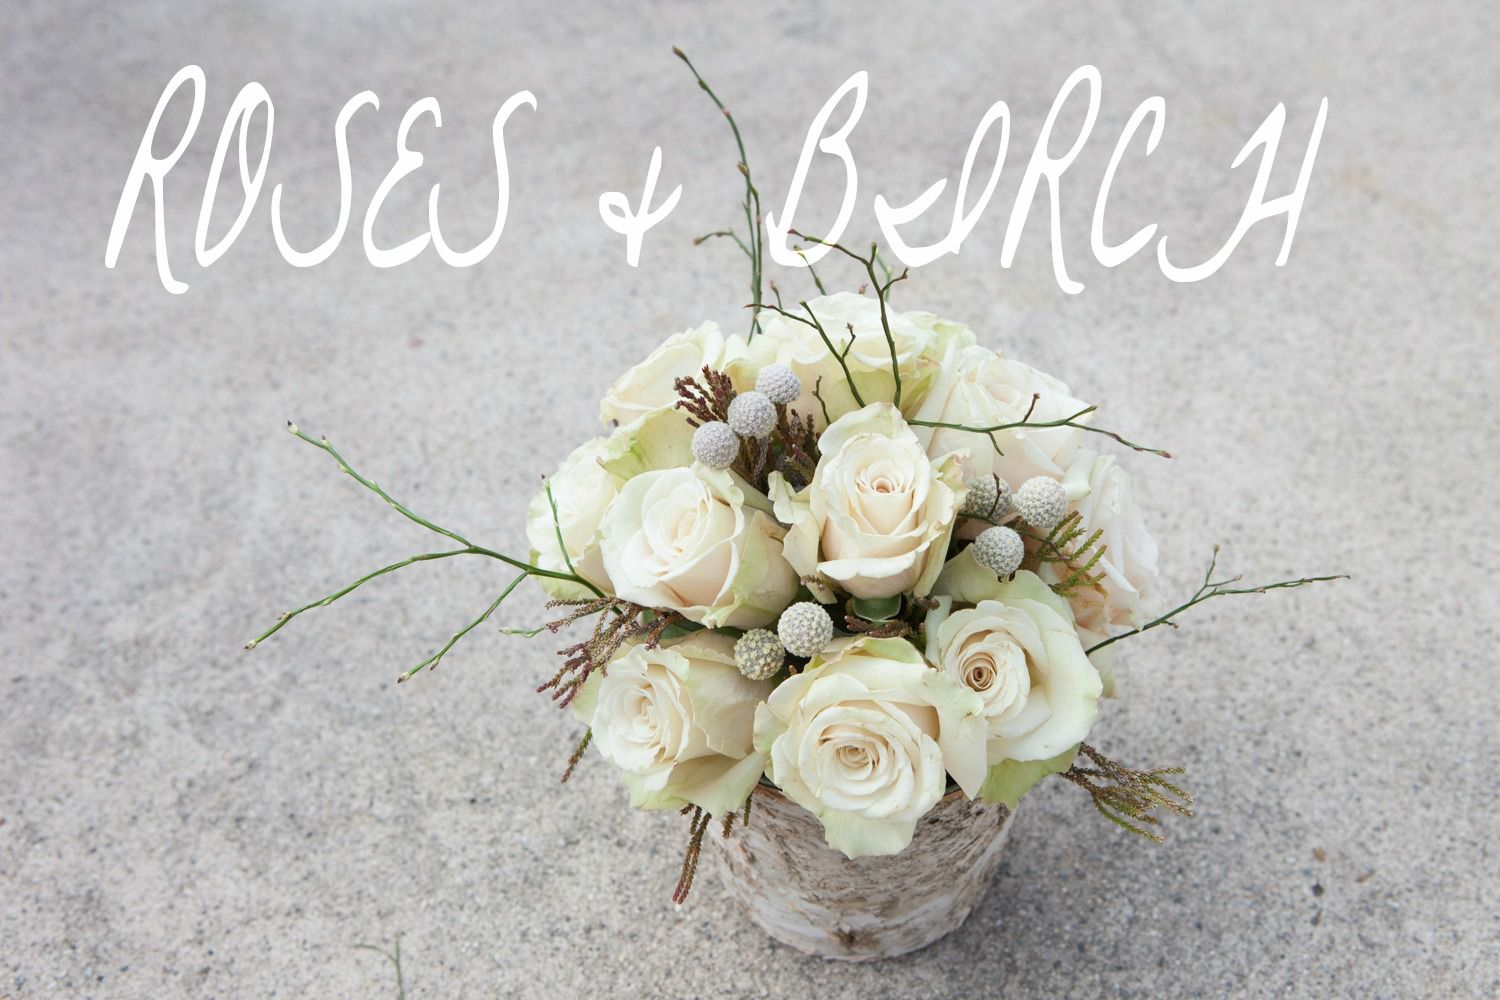 Creating A Woodland Rose & Birch Centerpiece - Rustic Wedding Chic